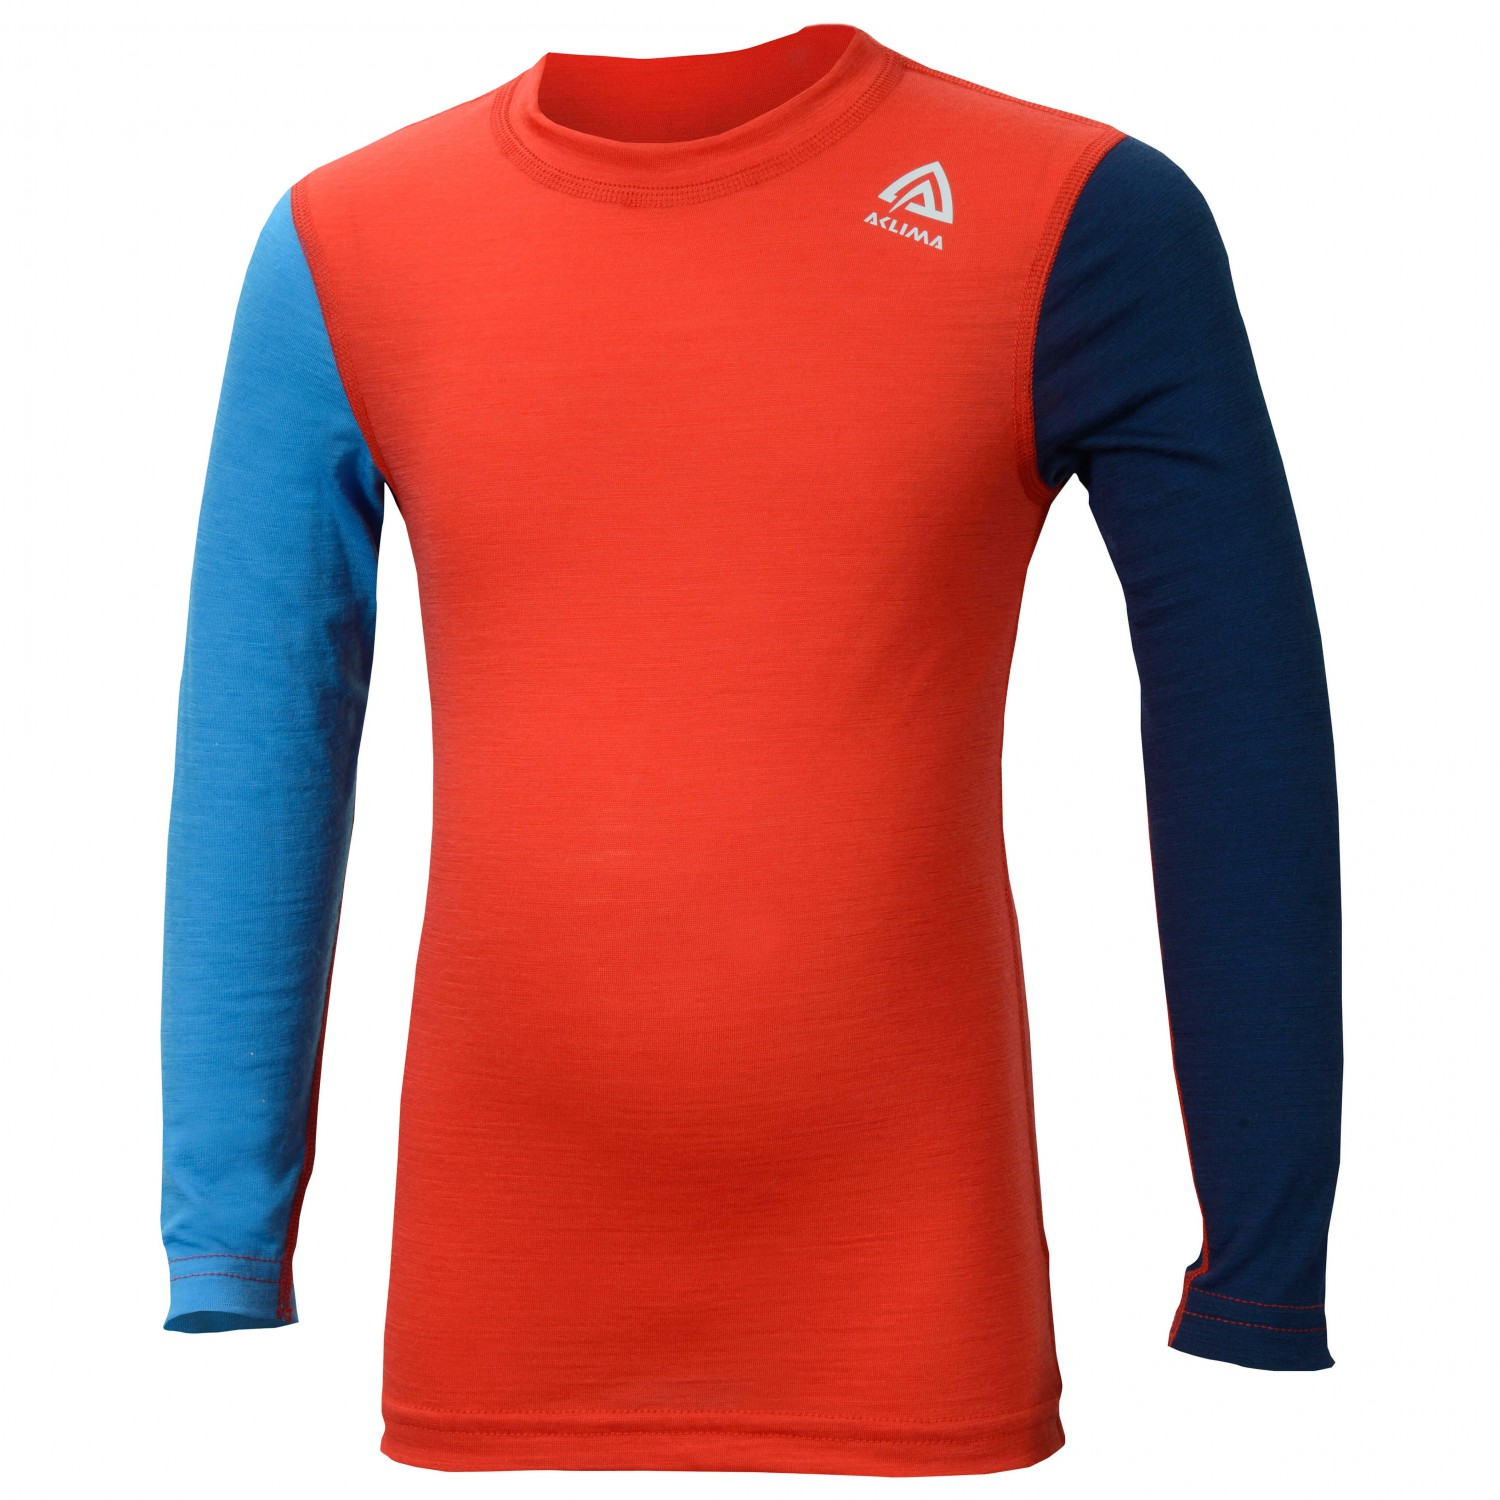 f0d8c5d6a7 Aclima - Kid s LightWool Crew Neck Shirt - Merino base layer